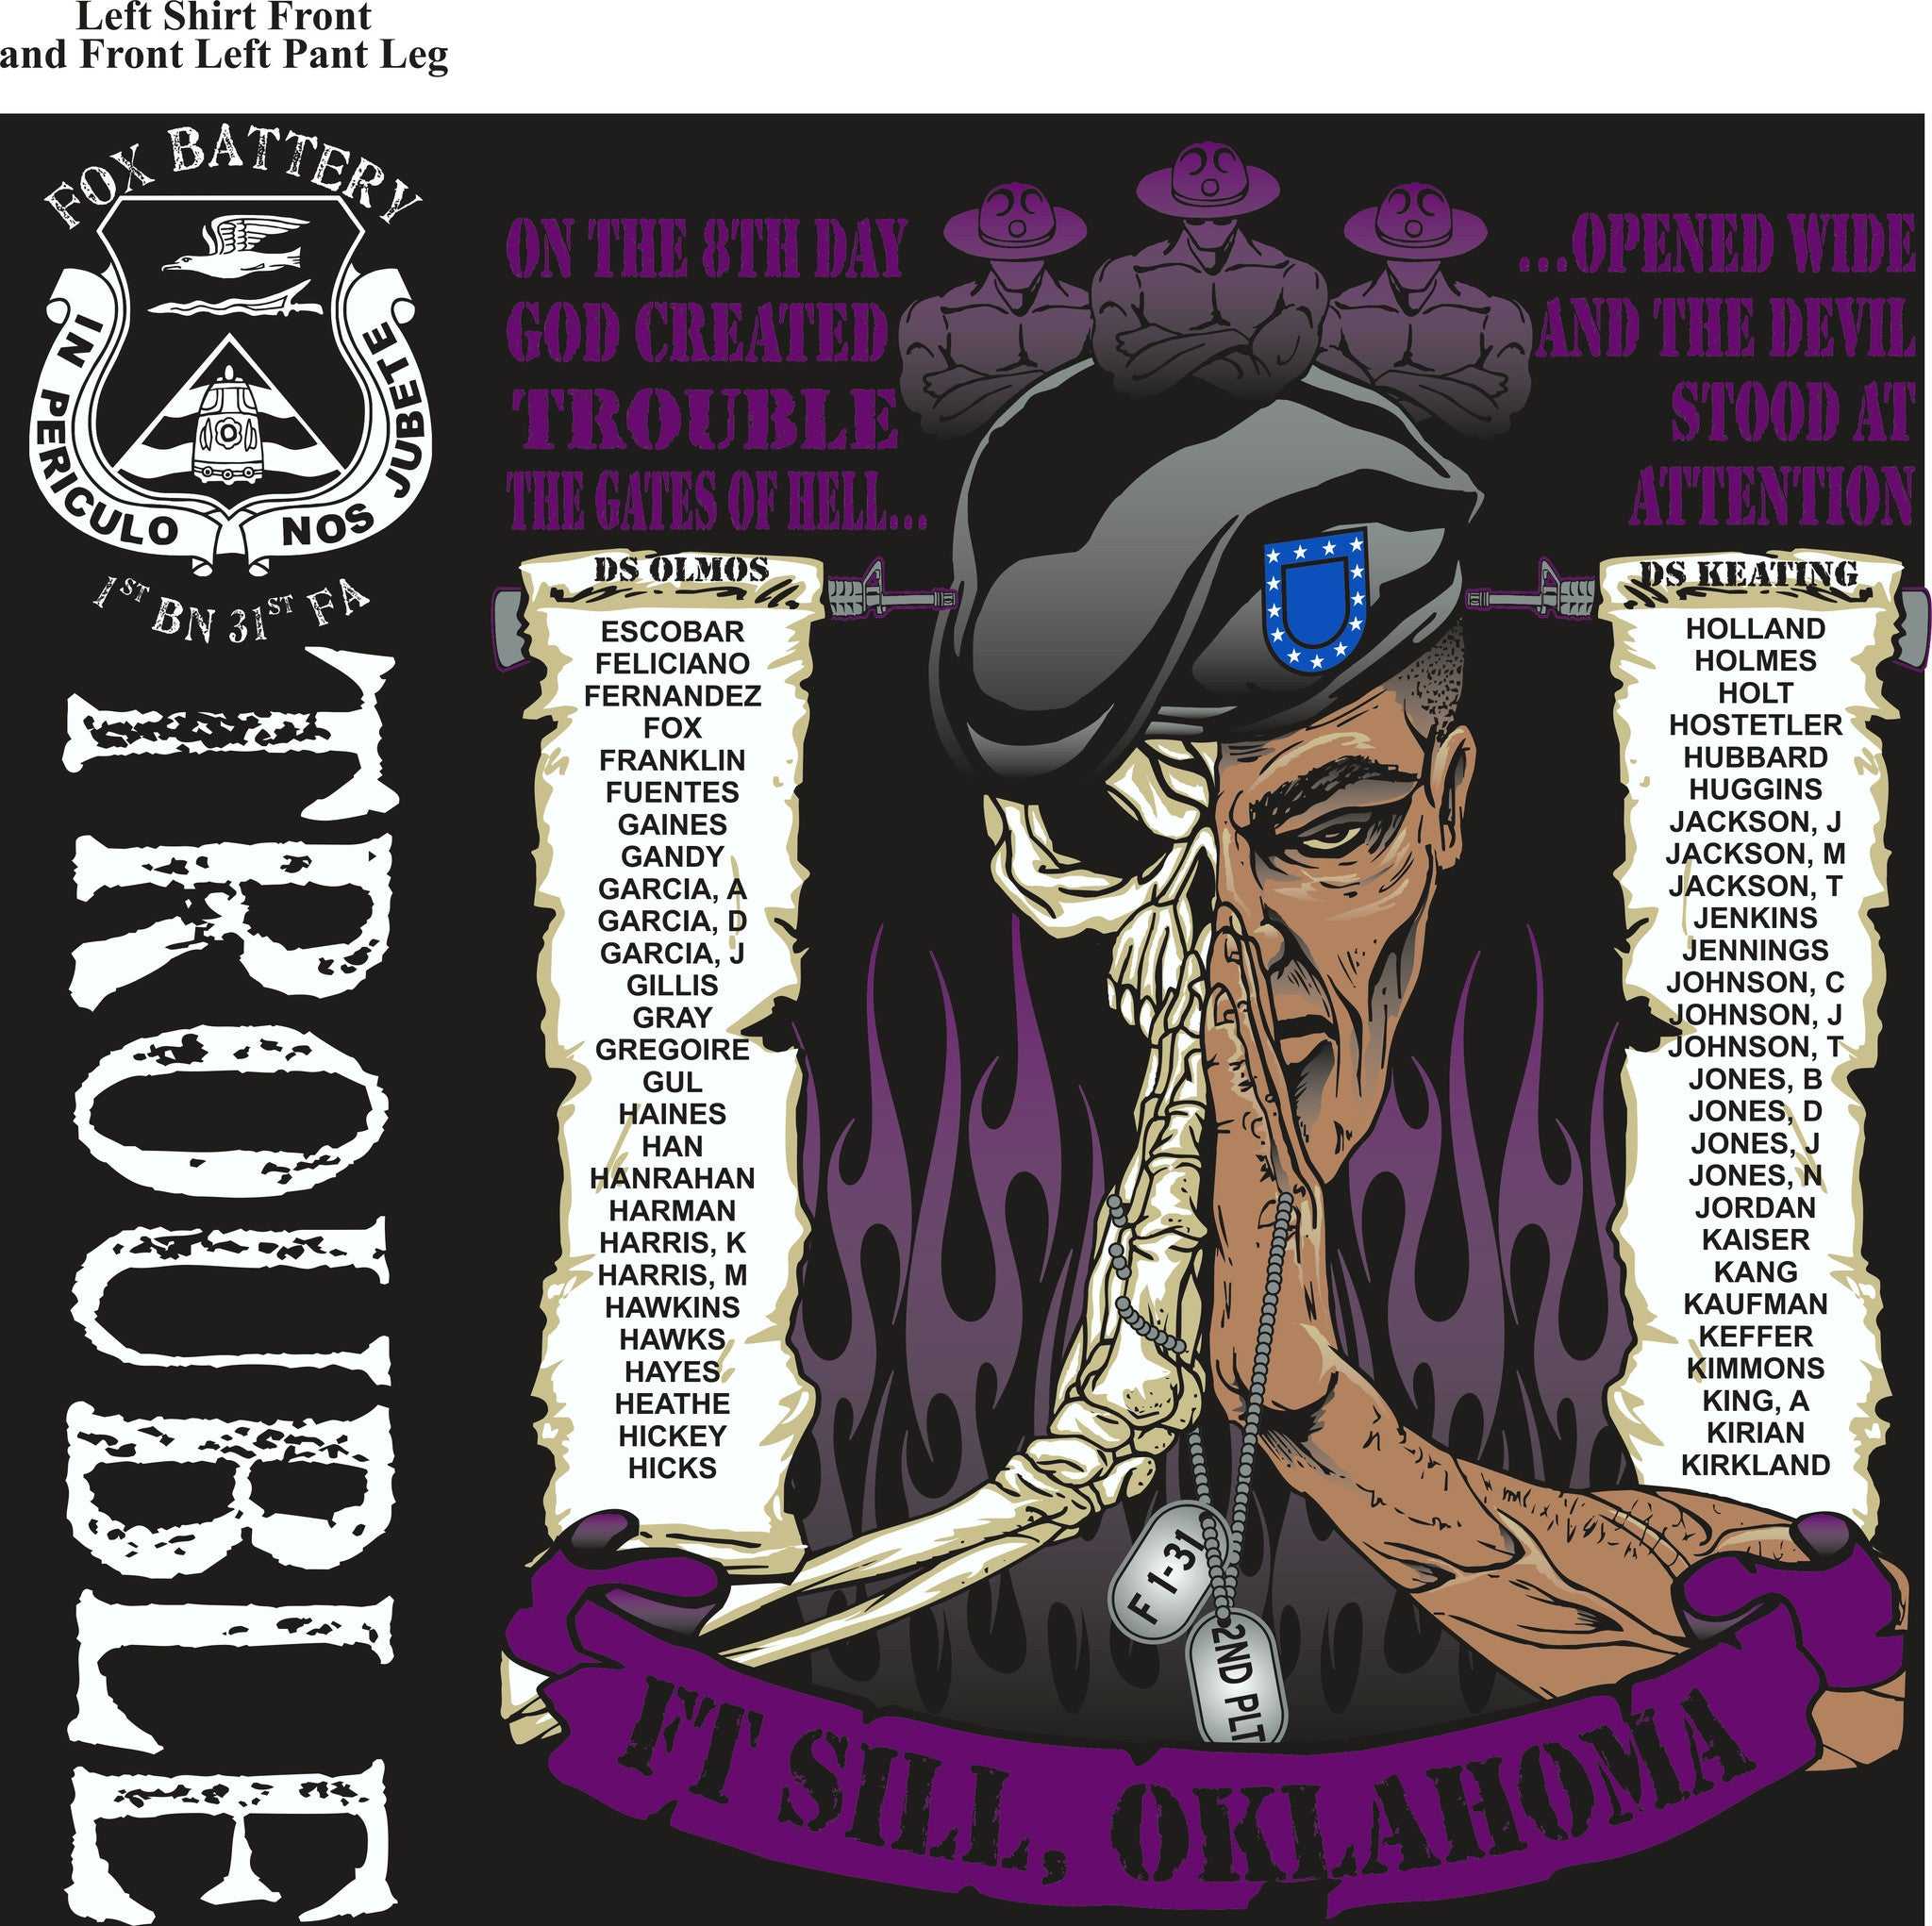 PLATOON SHIRTS (2nd generation print) FOX 1st 31st TROUBLE SEPT 2016